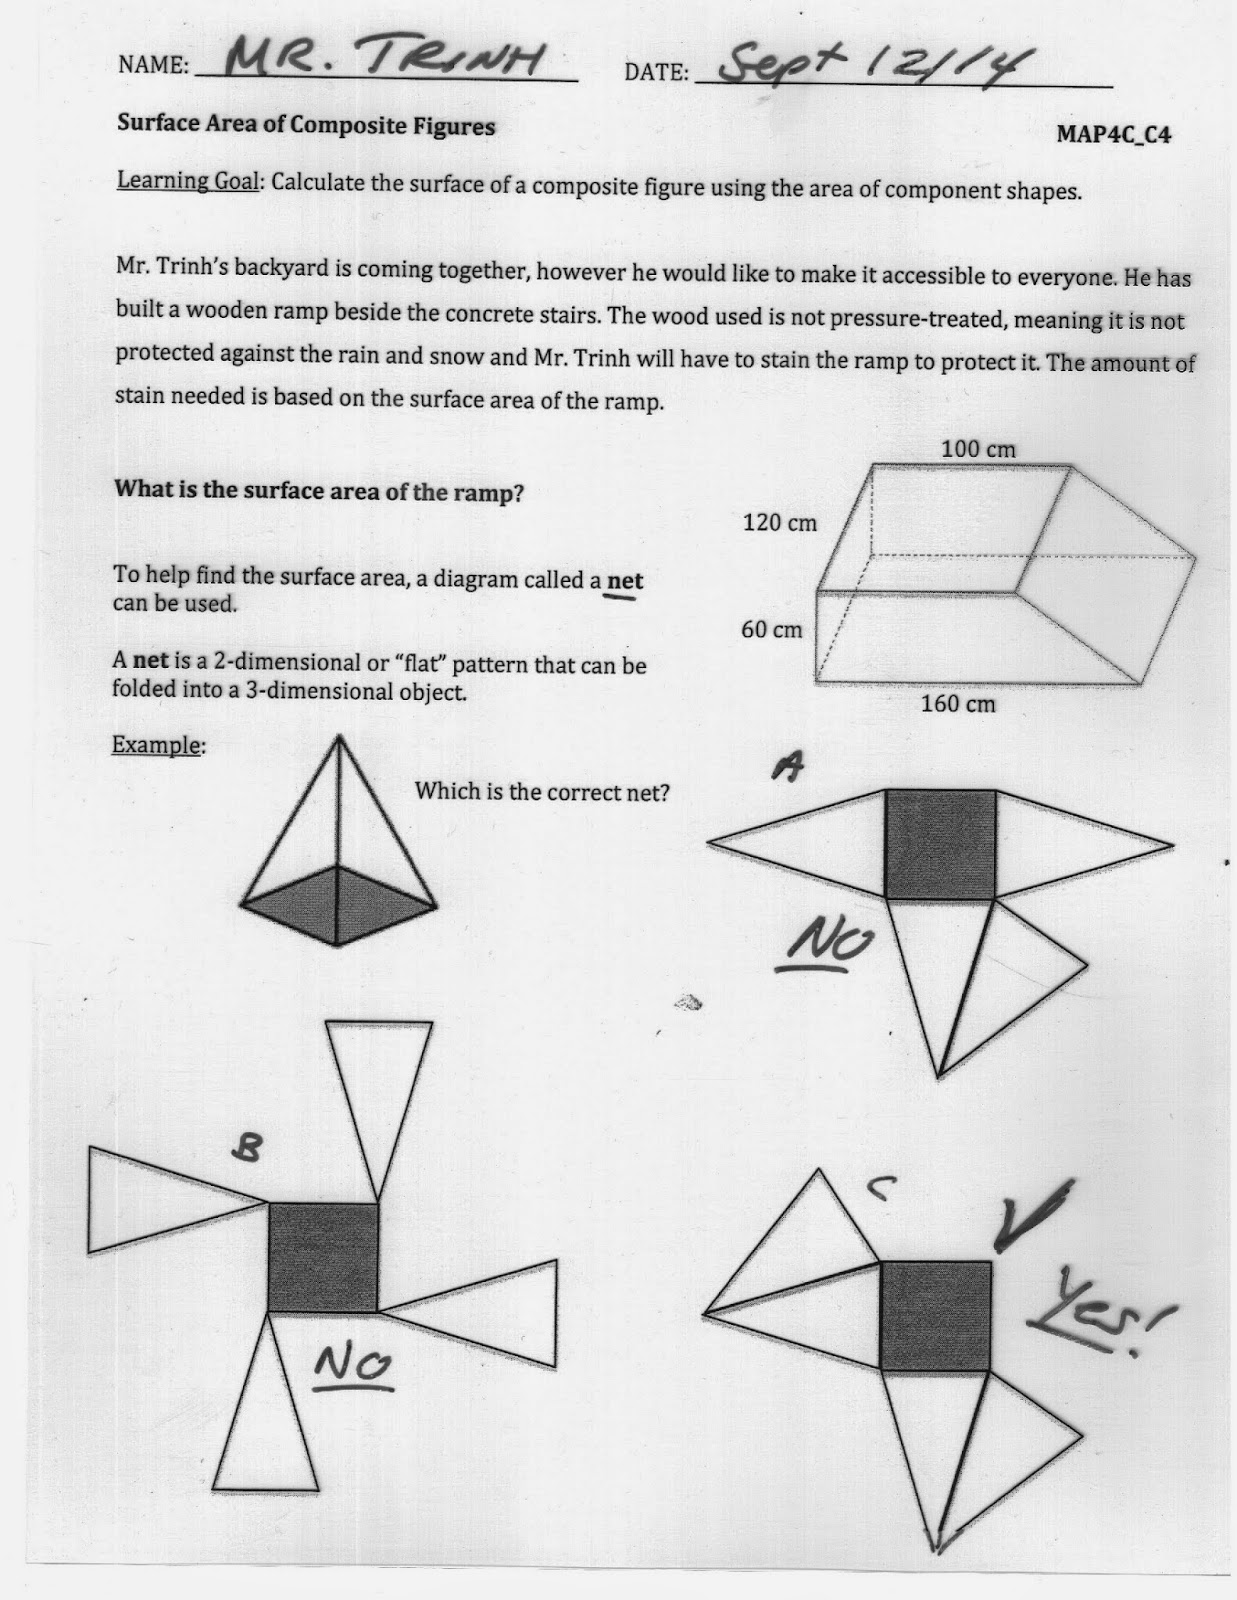 worksheet Composite Figures Area Worksheet grade 12 college math surface area of composite figures hwk worksheet 5 6 and 12